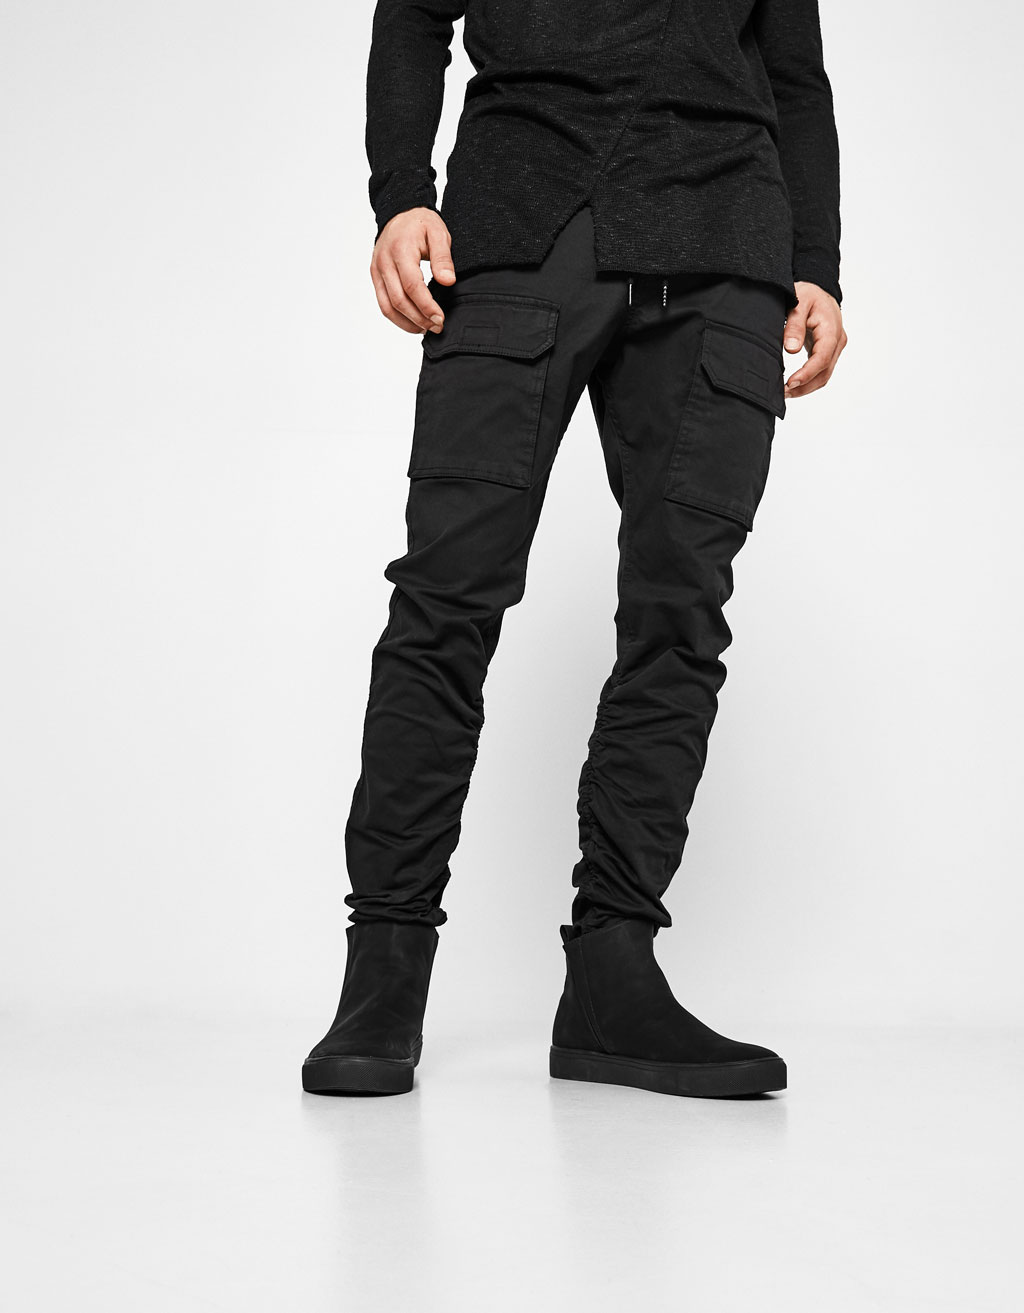 Jogging trousers with gathered hems